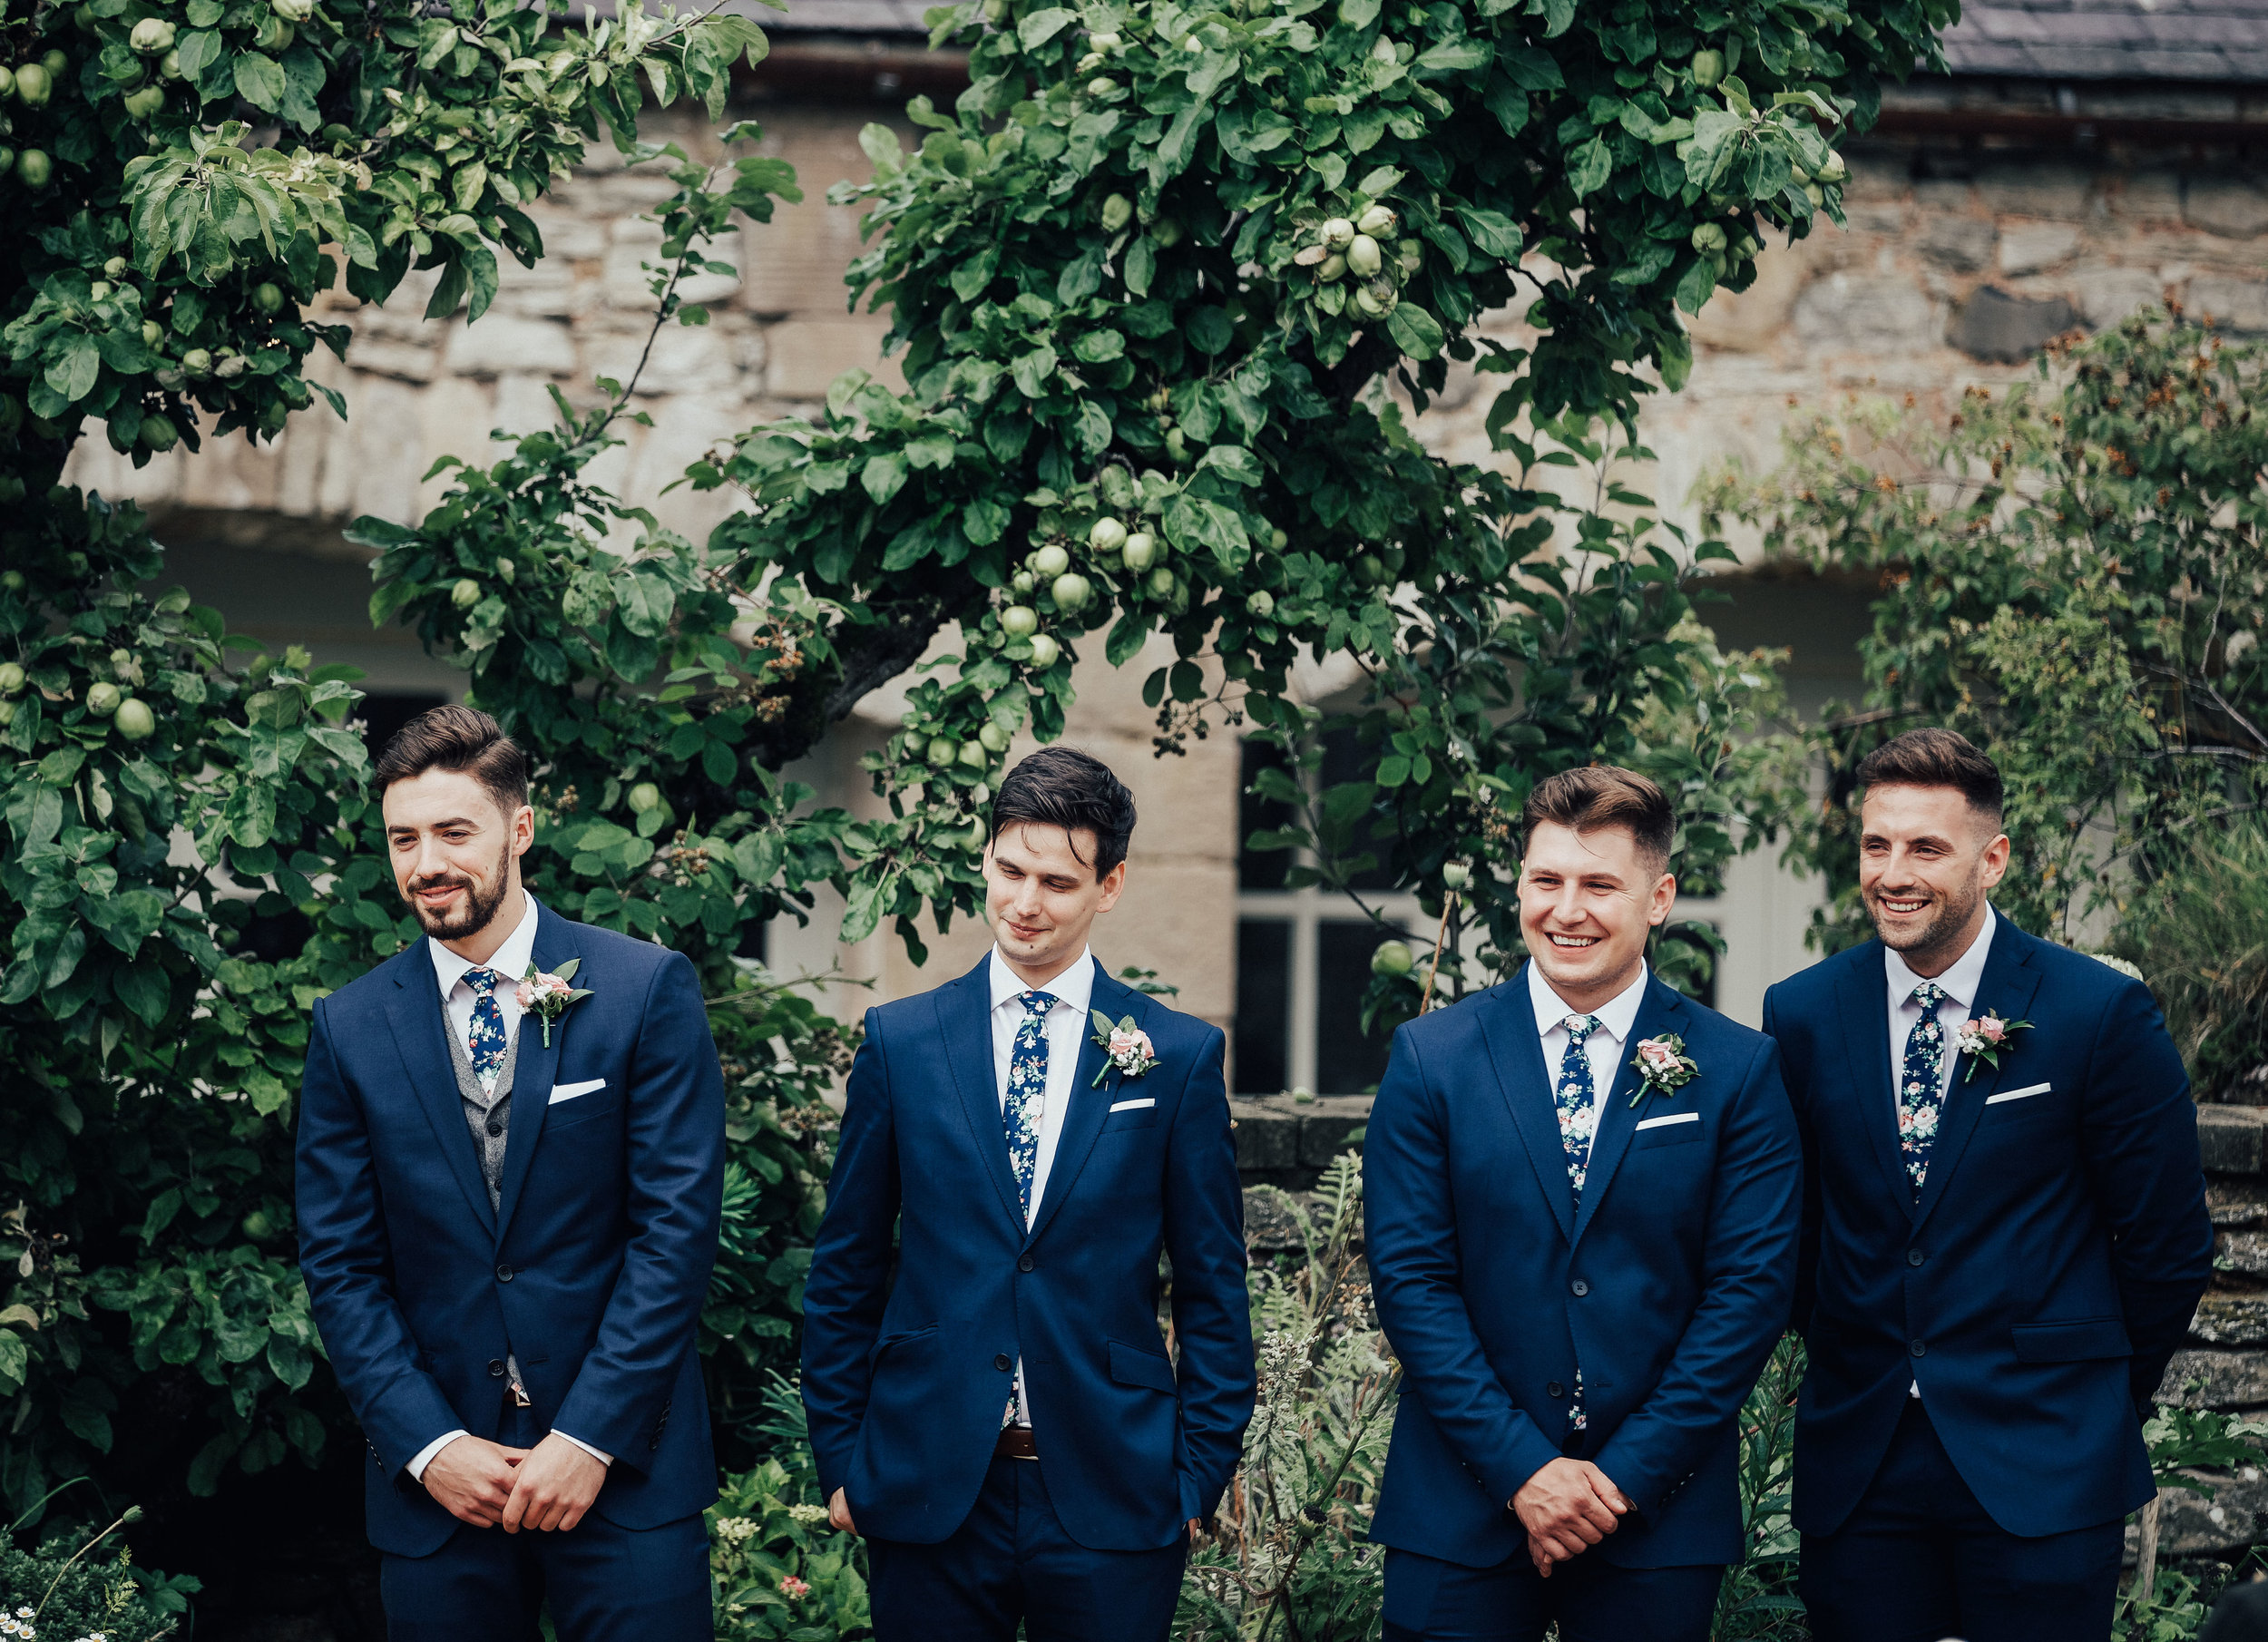 PJ_PHILLIPS_PHOTOGRAPHY_EDINBURGH_WEDDERBURN_BARNS_WEDDING_EDINBURGH_WEDDING_PHOTOGRAPHER_58.jpg